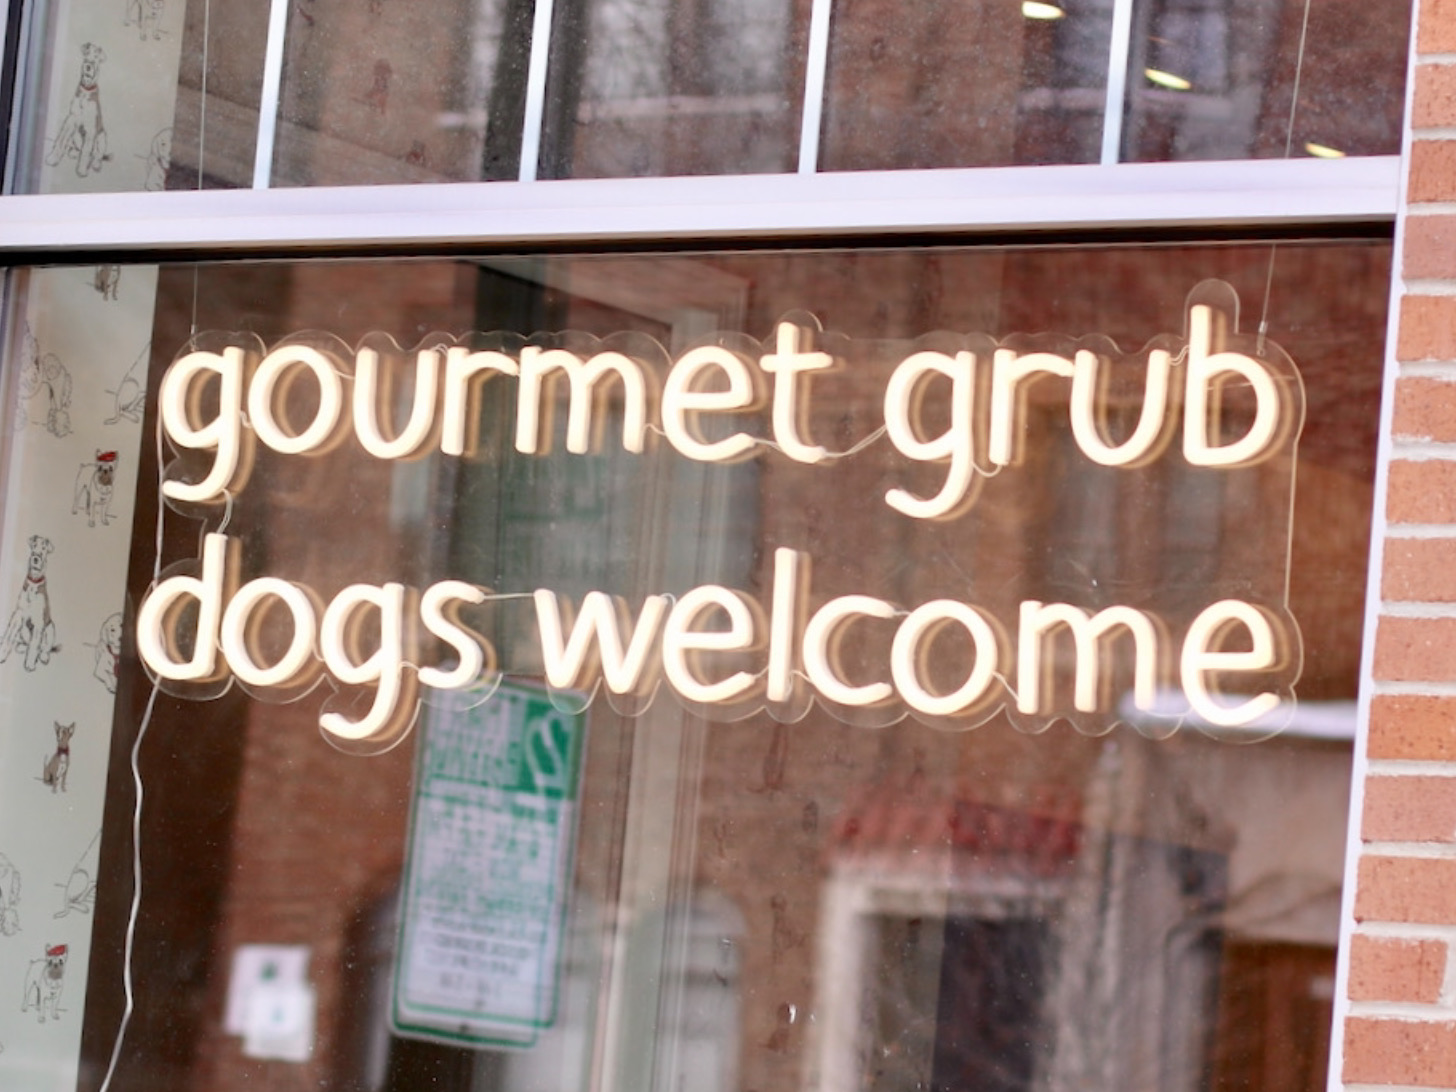 Gourmet Grub Dogs Welcome sign